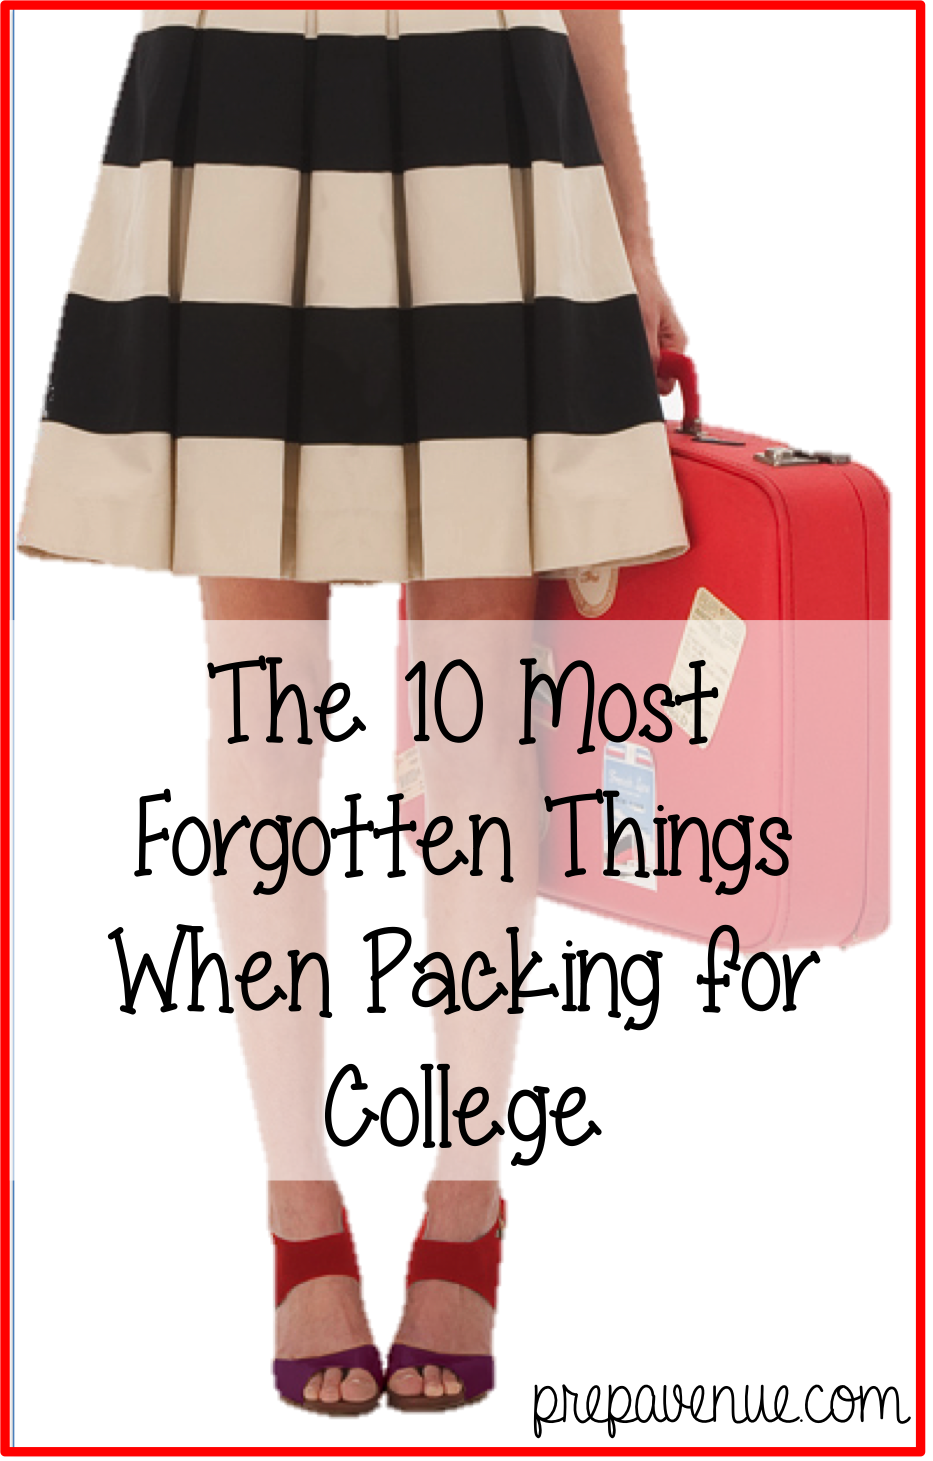 The 10 Most Forgotten Things When Packing For College